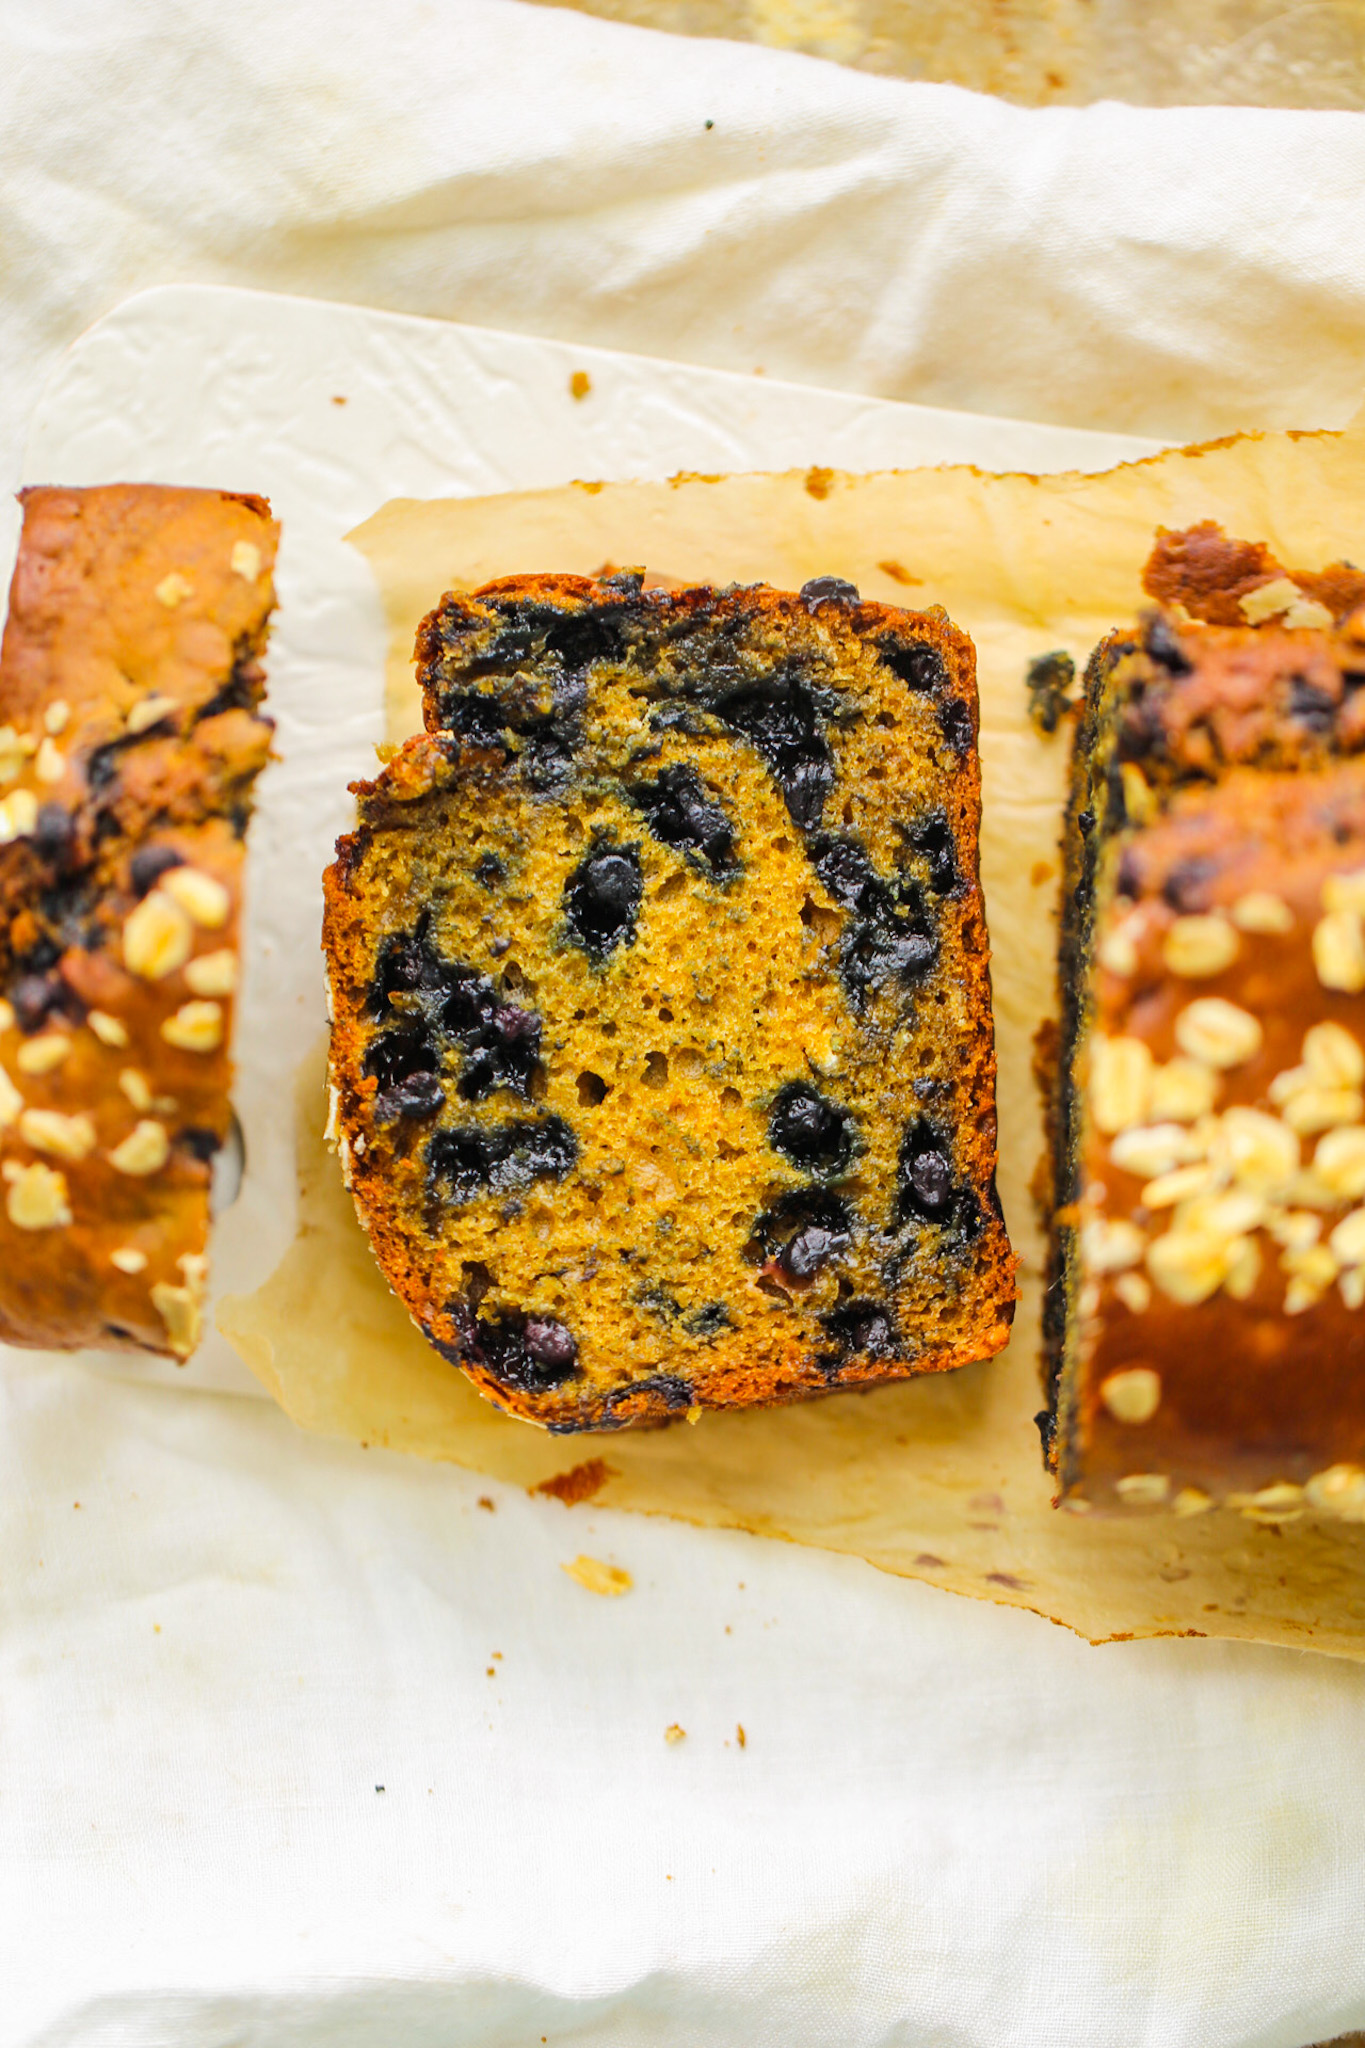 Sliced Vegan Blueberry Loaf